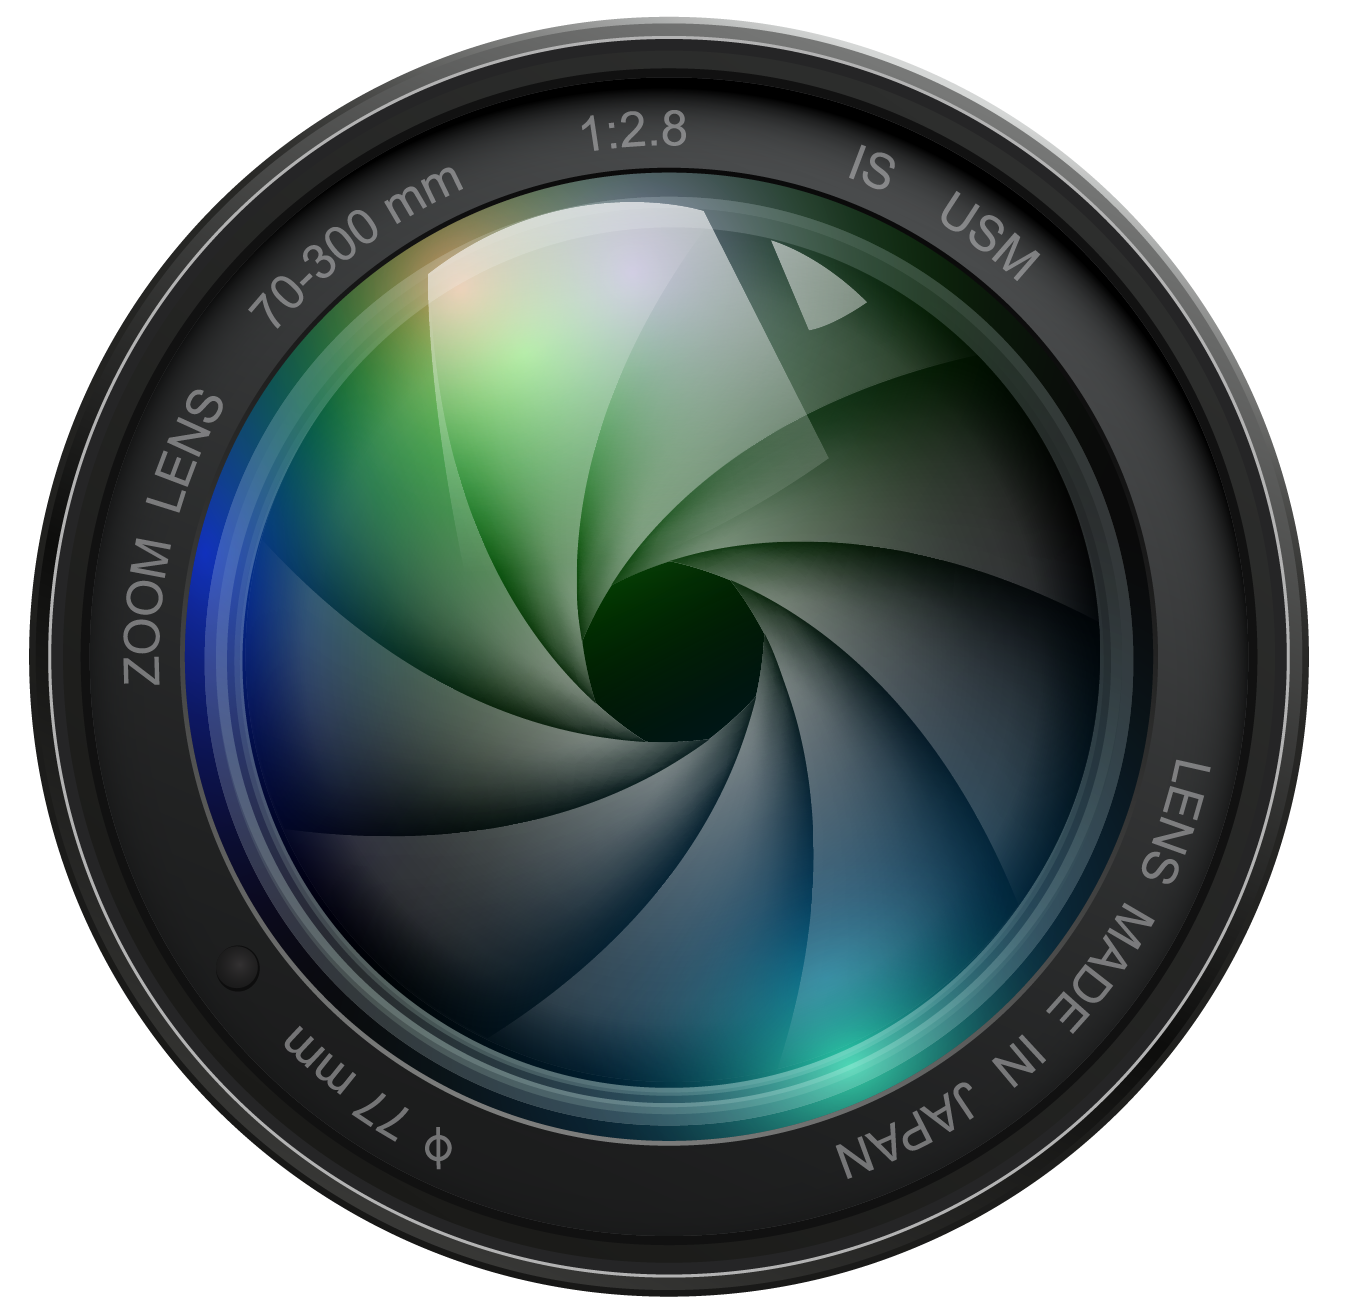 photography camera logo photography ball labs #7138